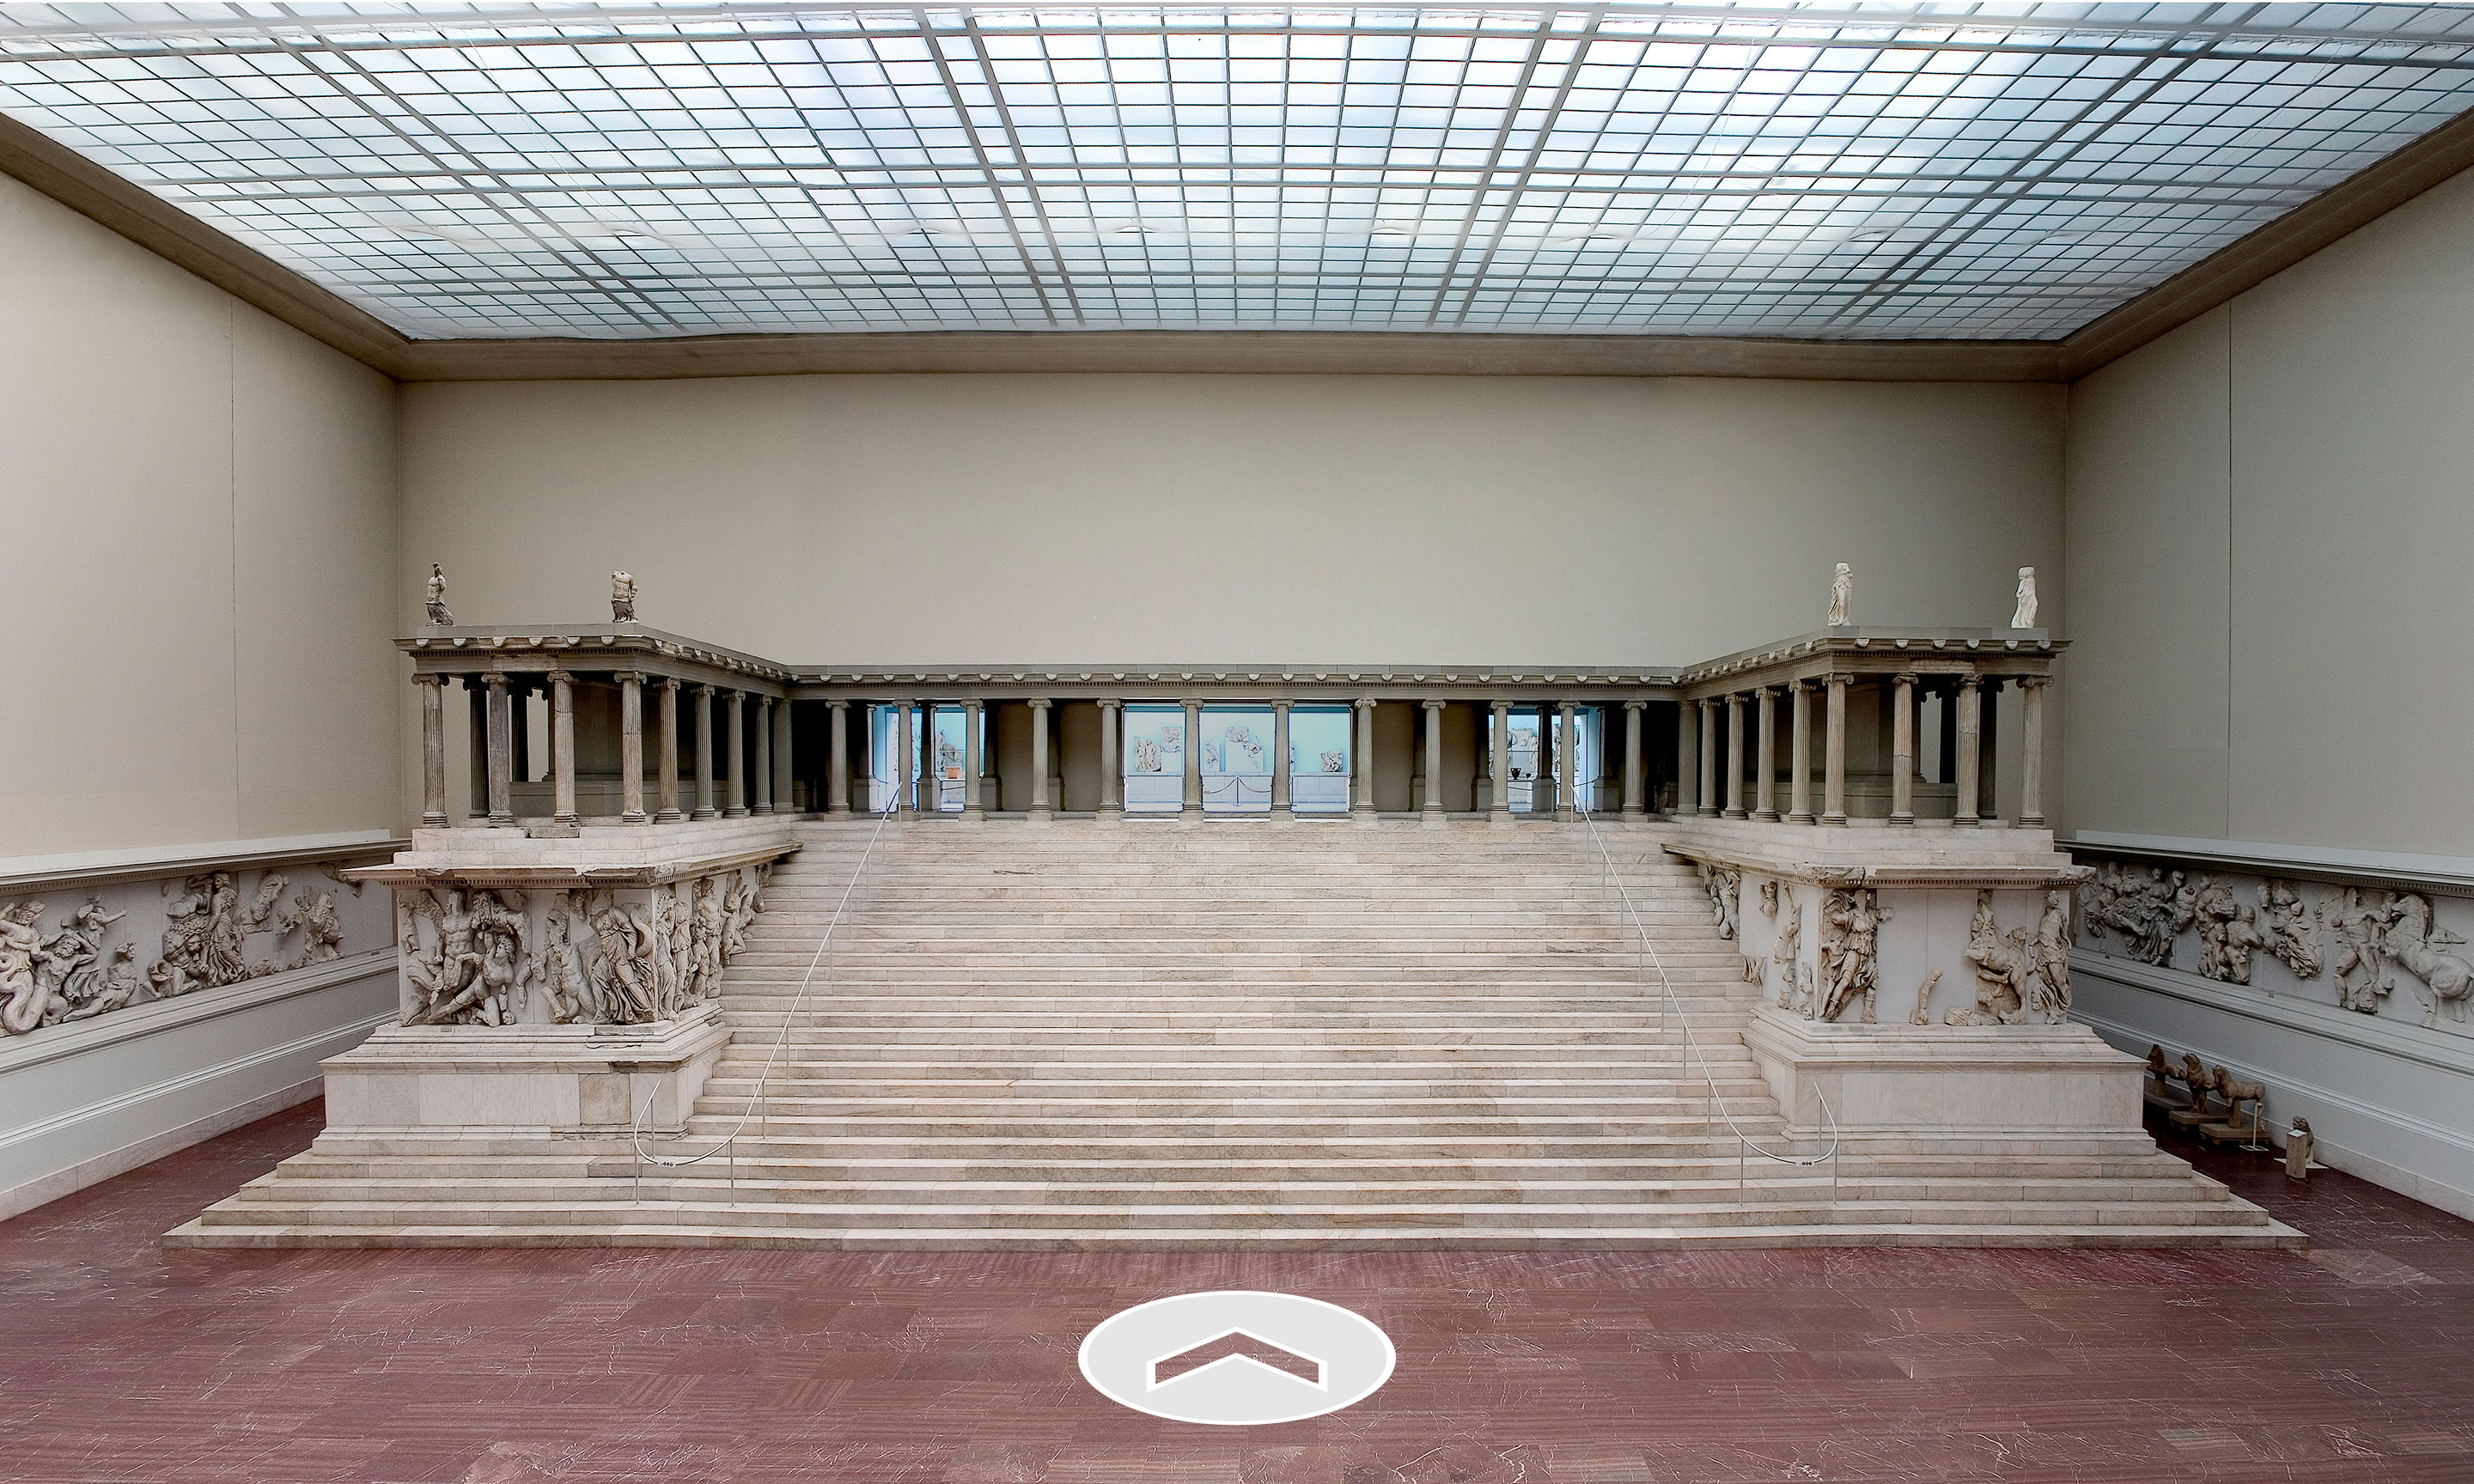 A greek ruin in a large museum space.